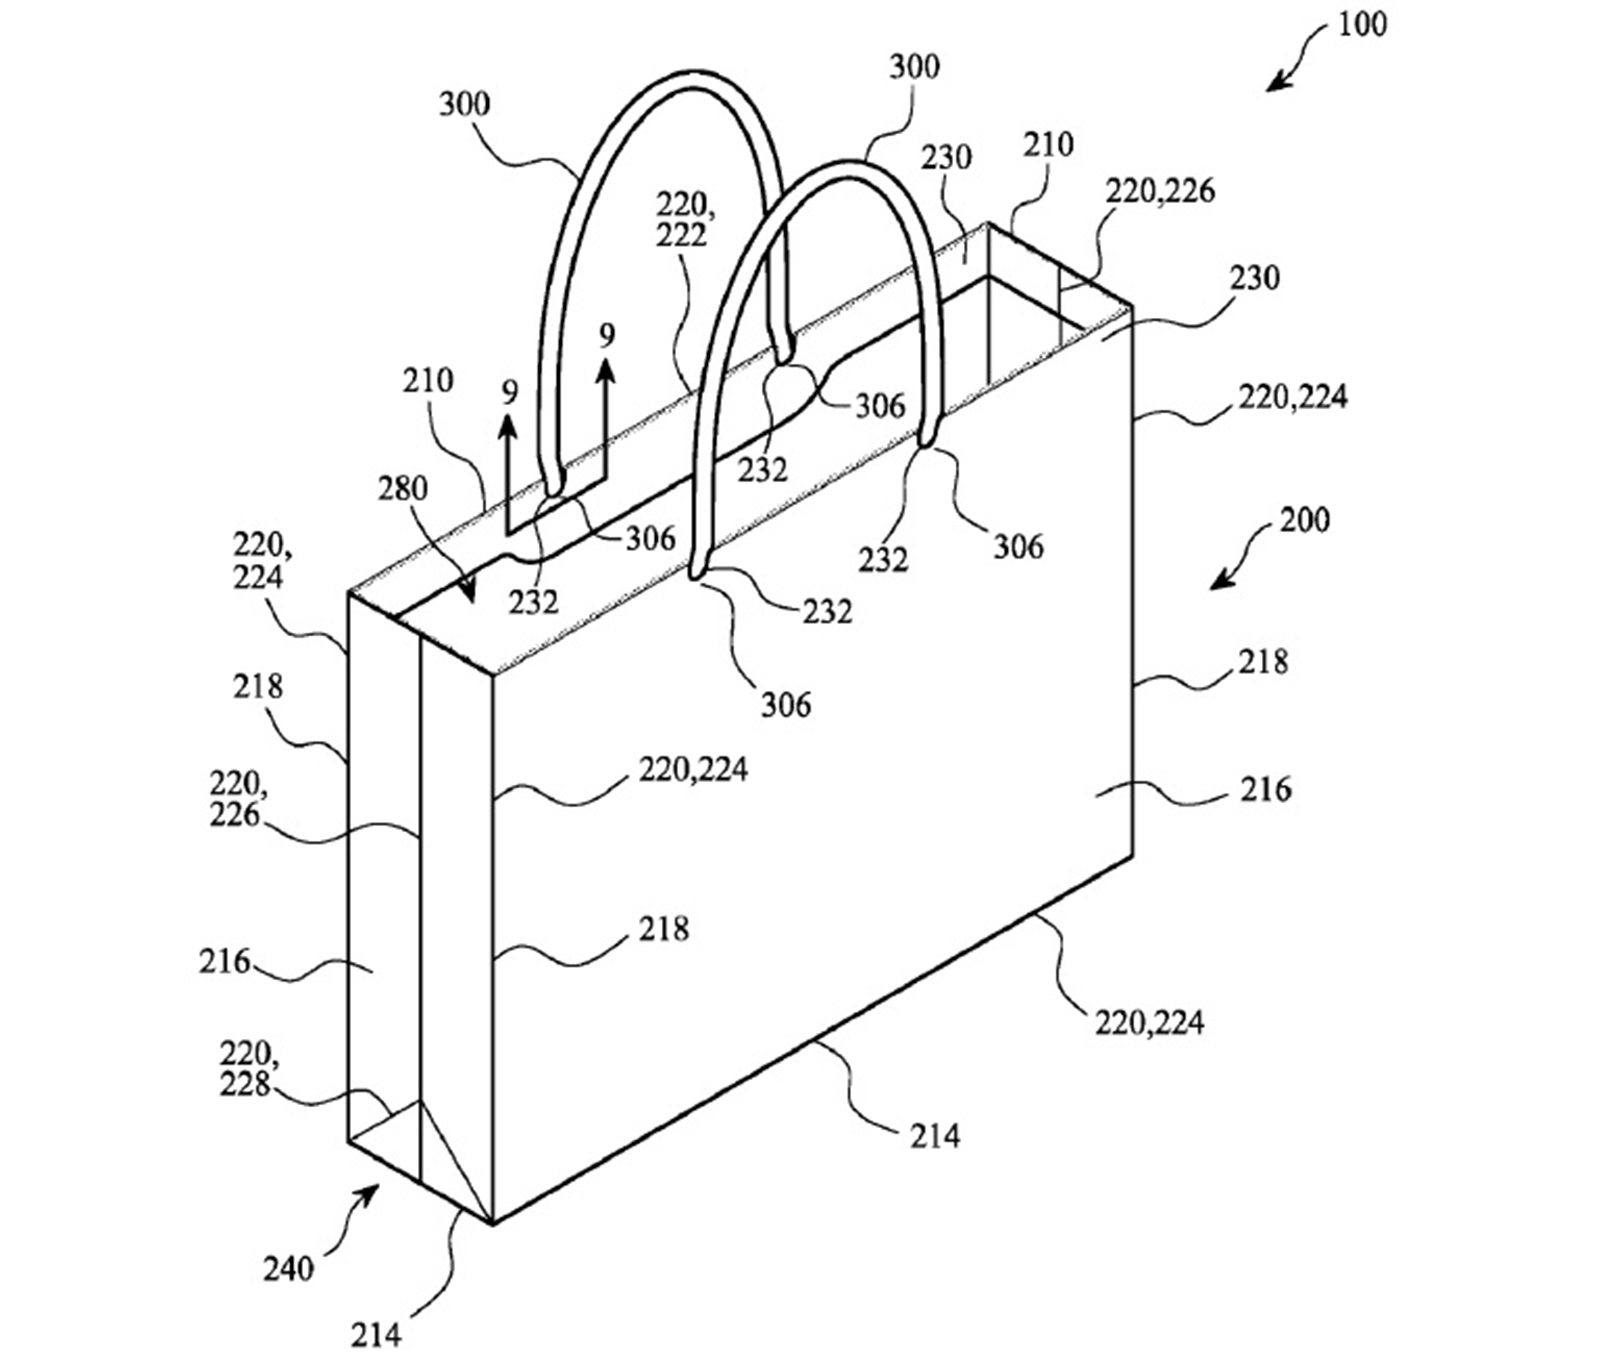 The iBag? Apple follows iPhone 7 with patent for paper bag